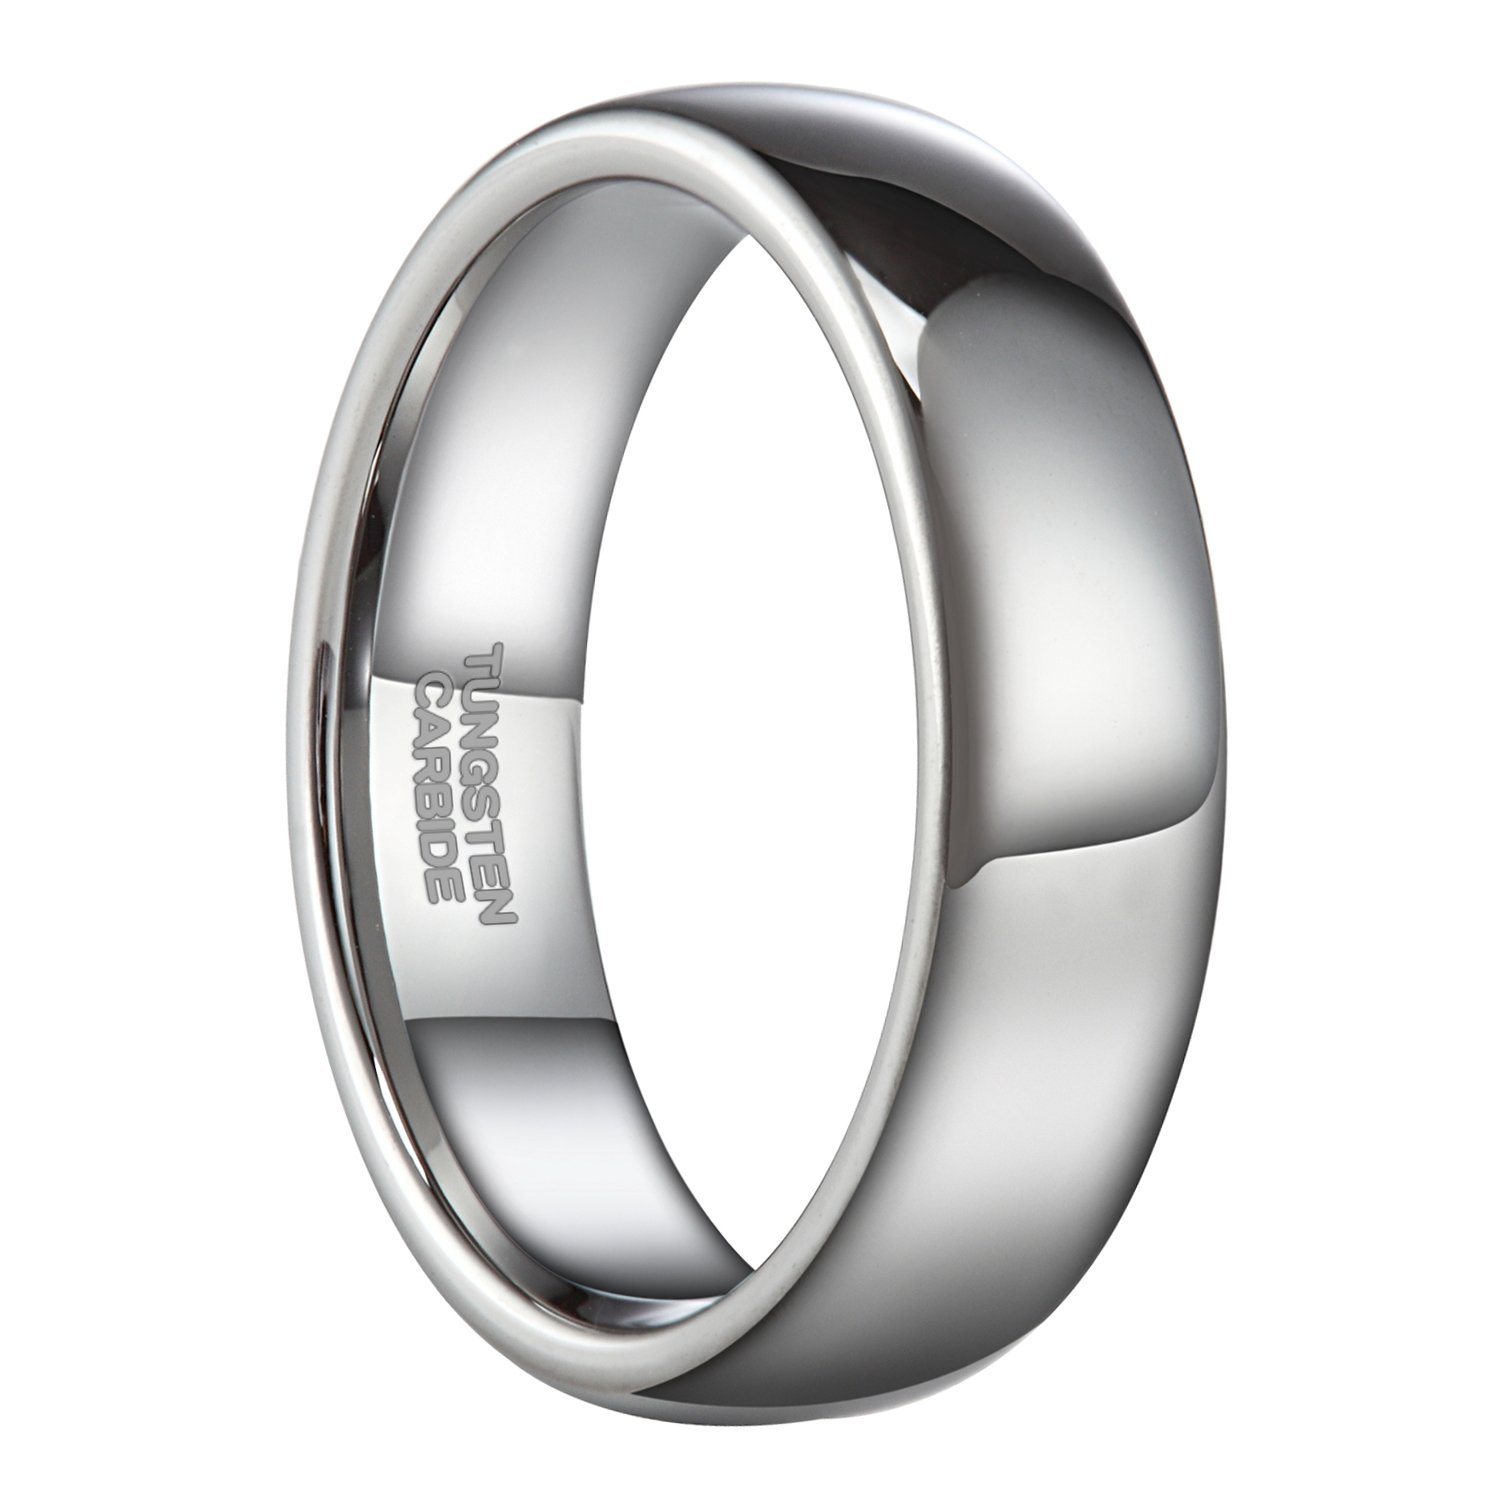 6mm Silver Tungsten Carbide Ring for Men Women Wedding Band High Polished Shiny Domed Comfort Fit Size 9.5